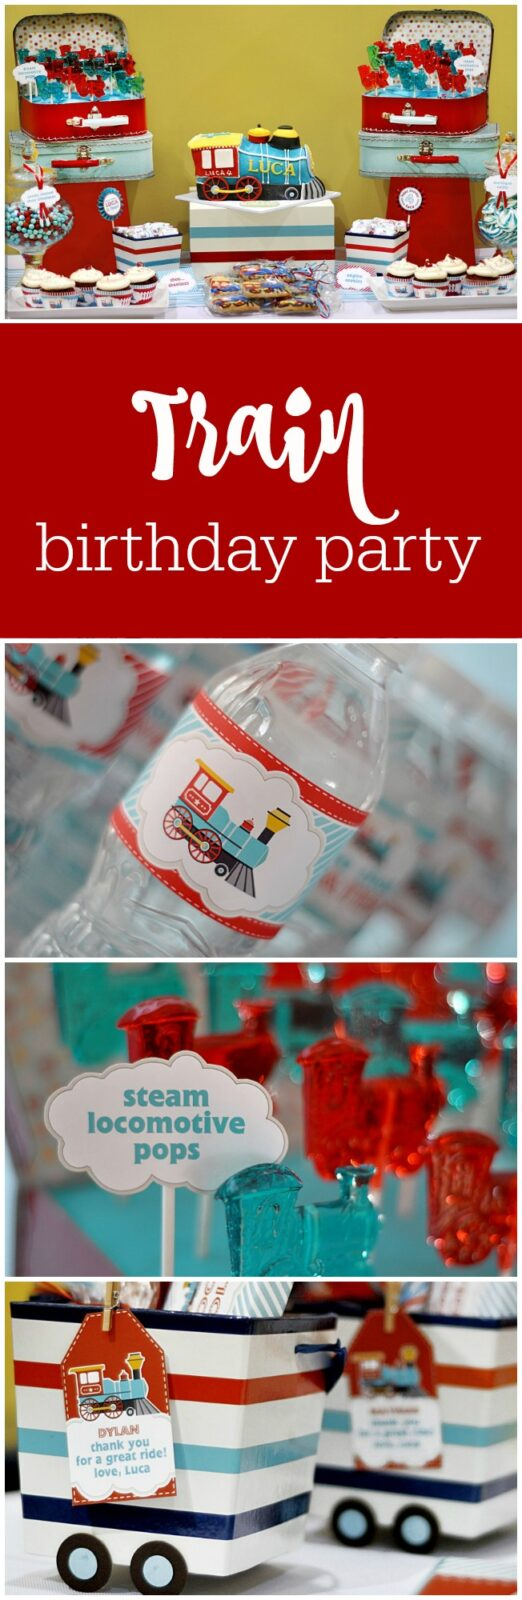 Train birthday party by BluGrass Designs featured on The Party Teacher